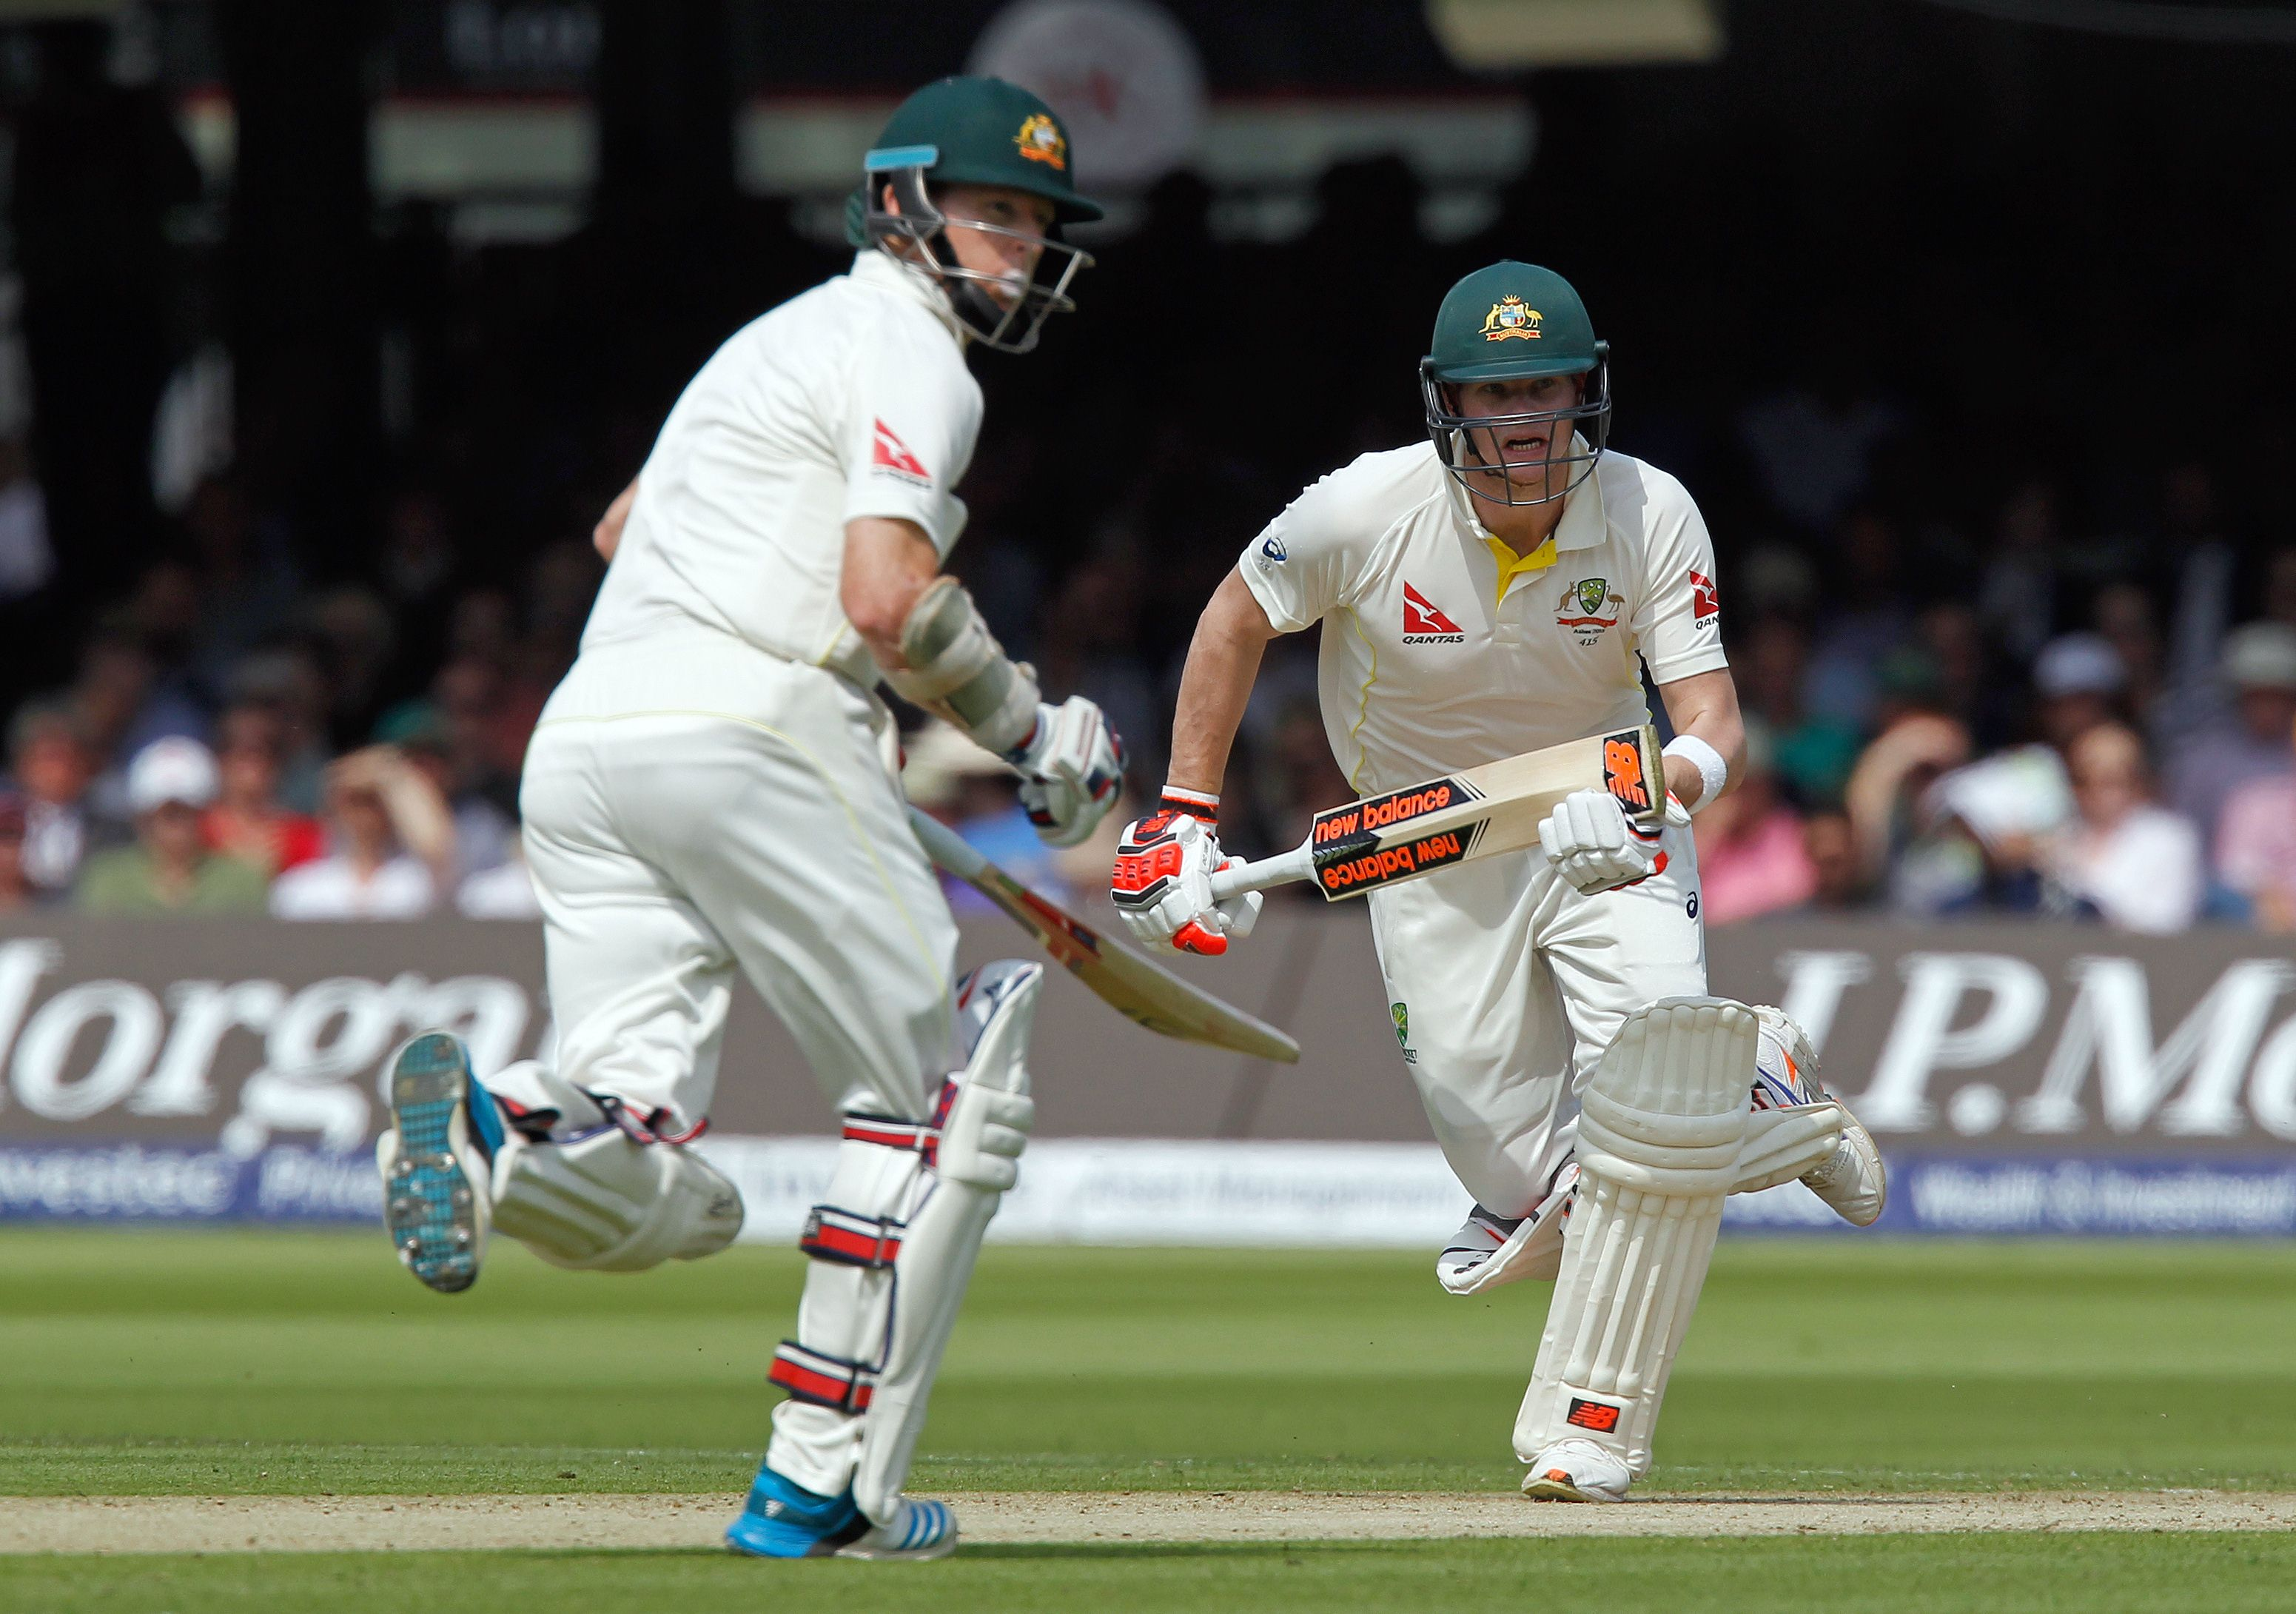 Australiau2019s Steven Smith (right) and his teammate Chris Rogers run between the wickets during the first day of their second Ashes Test match against England in London on Thursday. Photo: Reuters